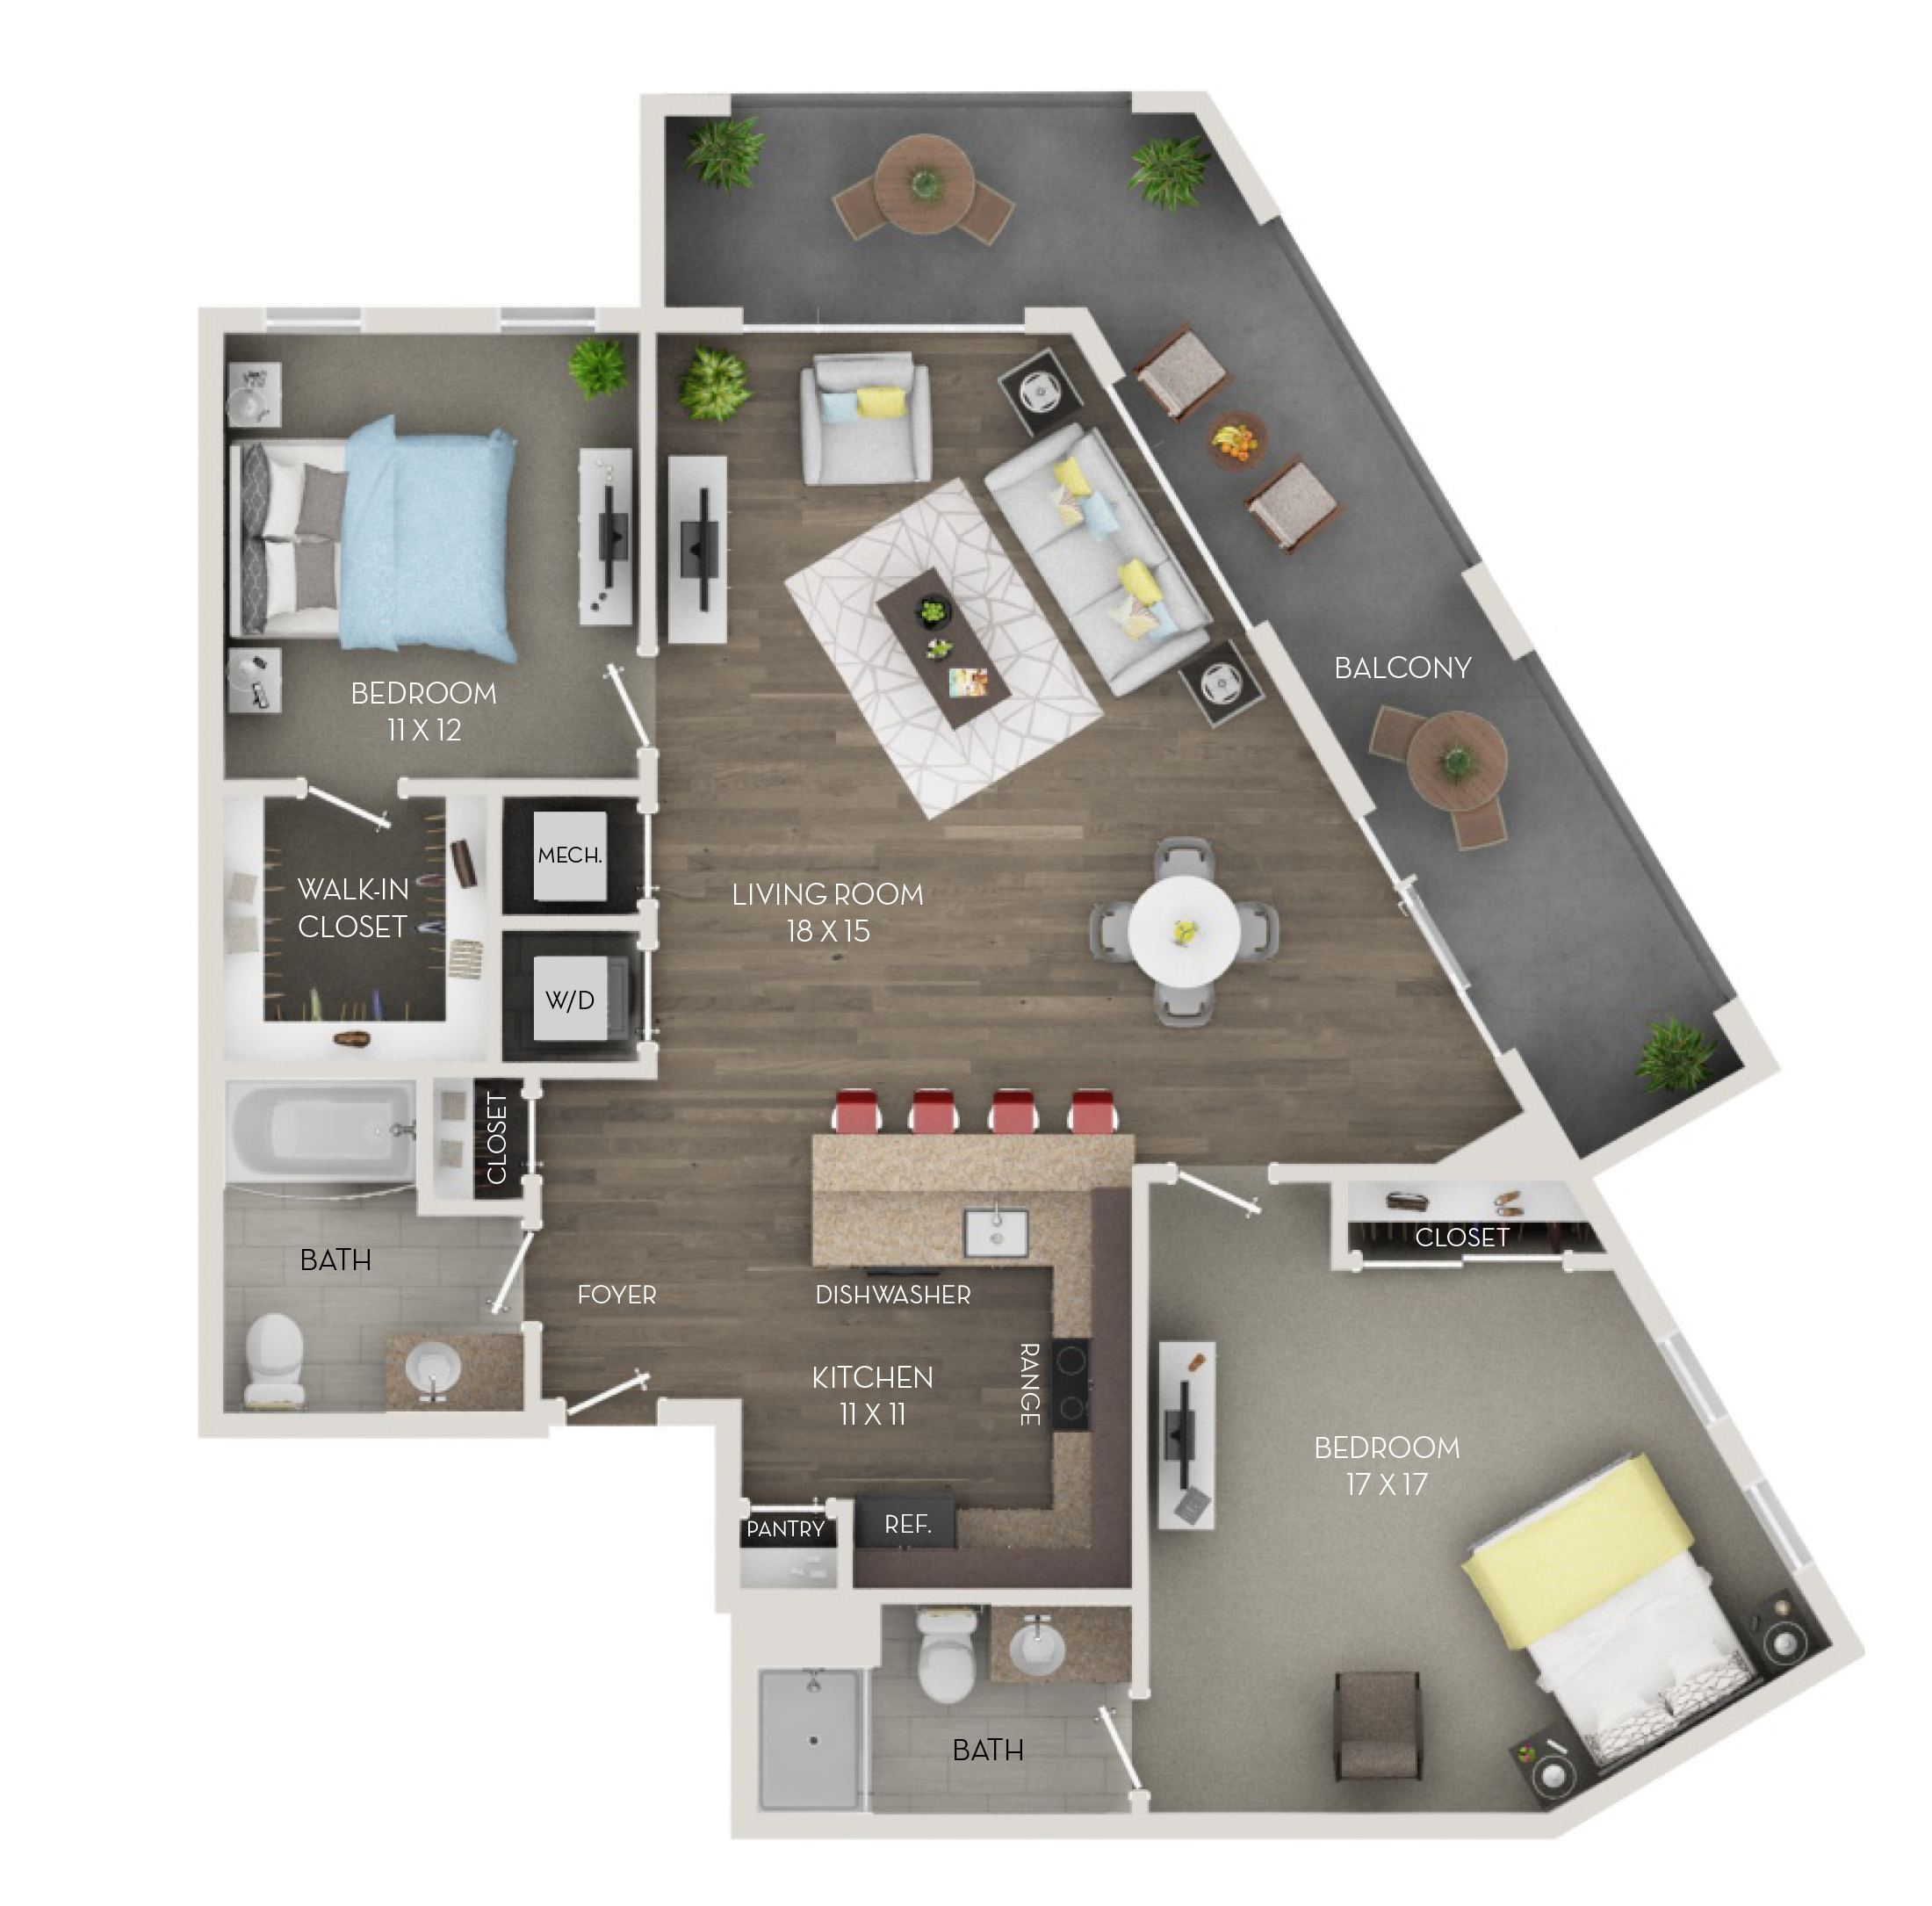 Two Bedroom, Two Bath (C5p)